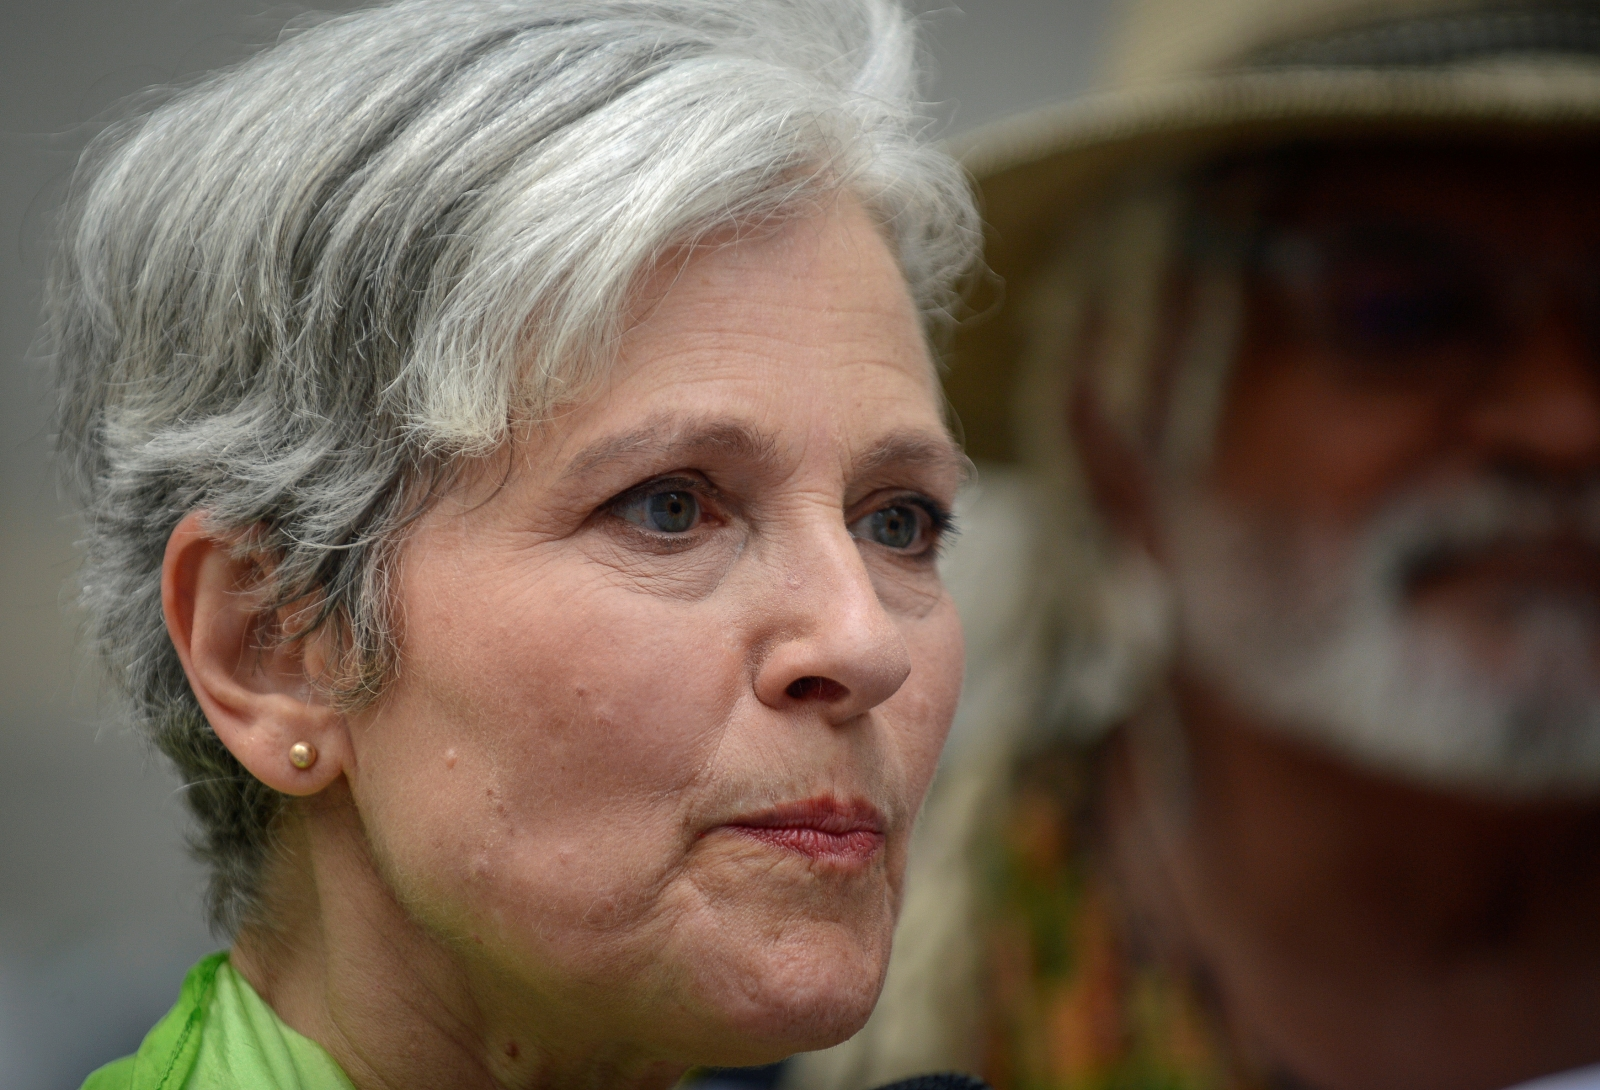 USA-ELECTION/Jill Stein